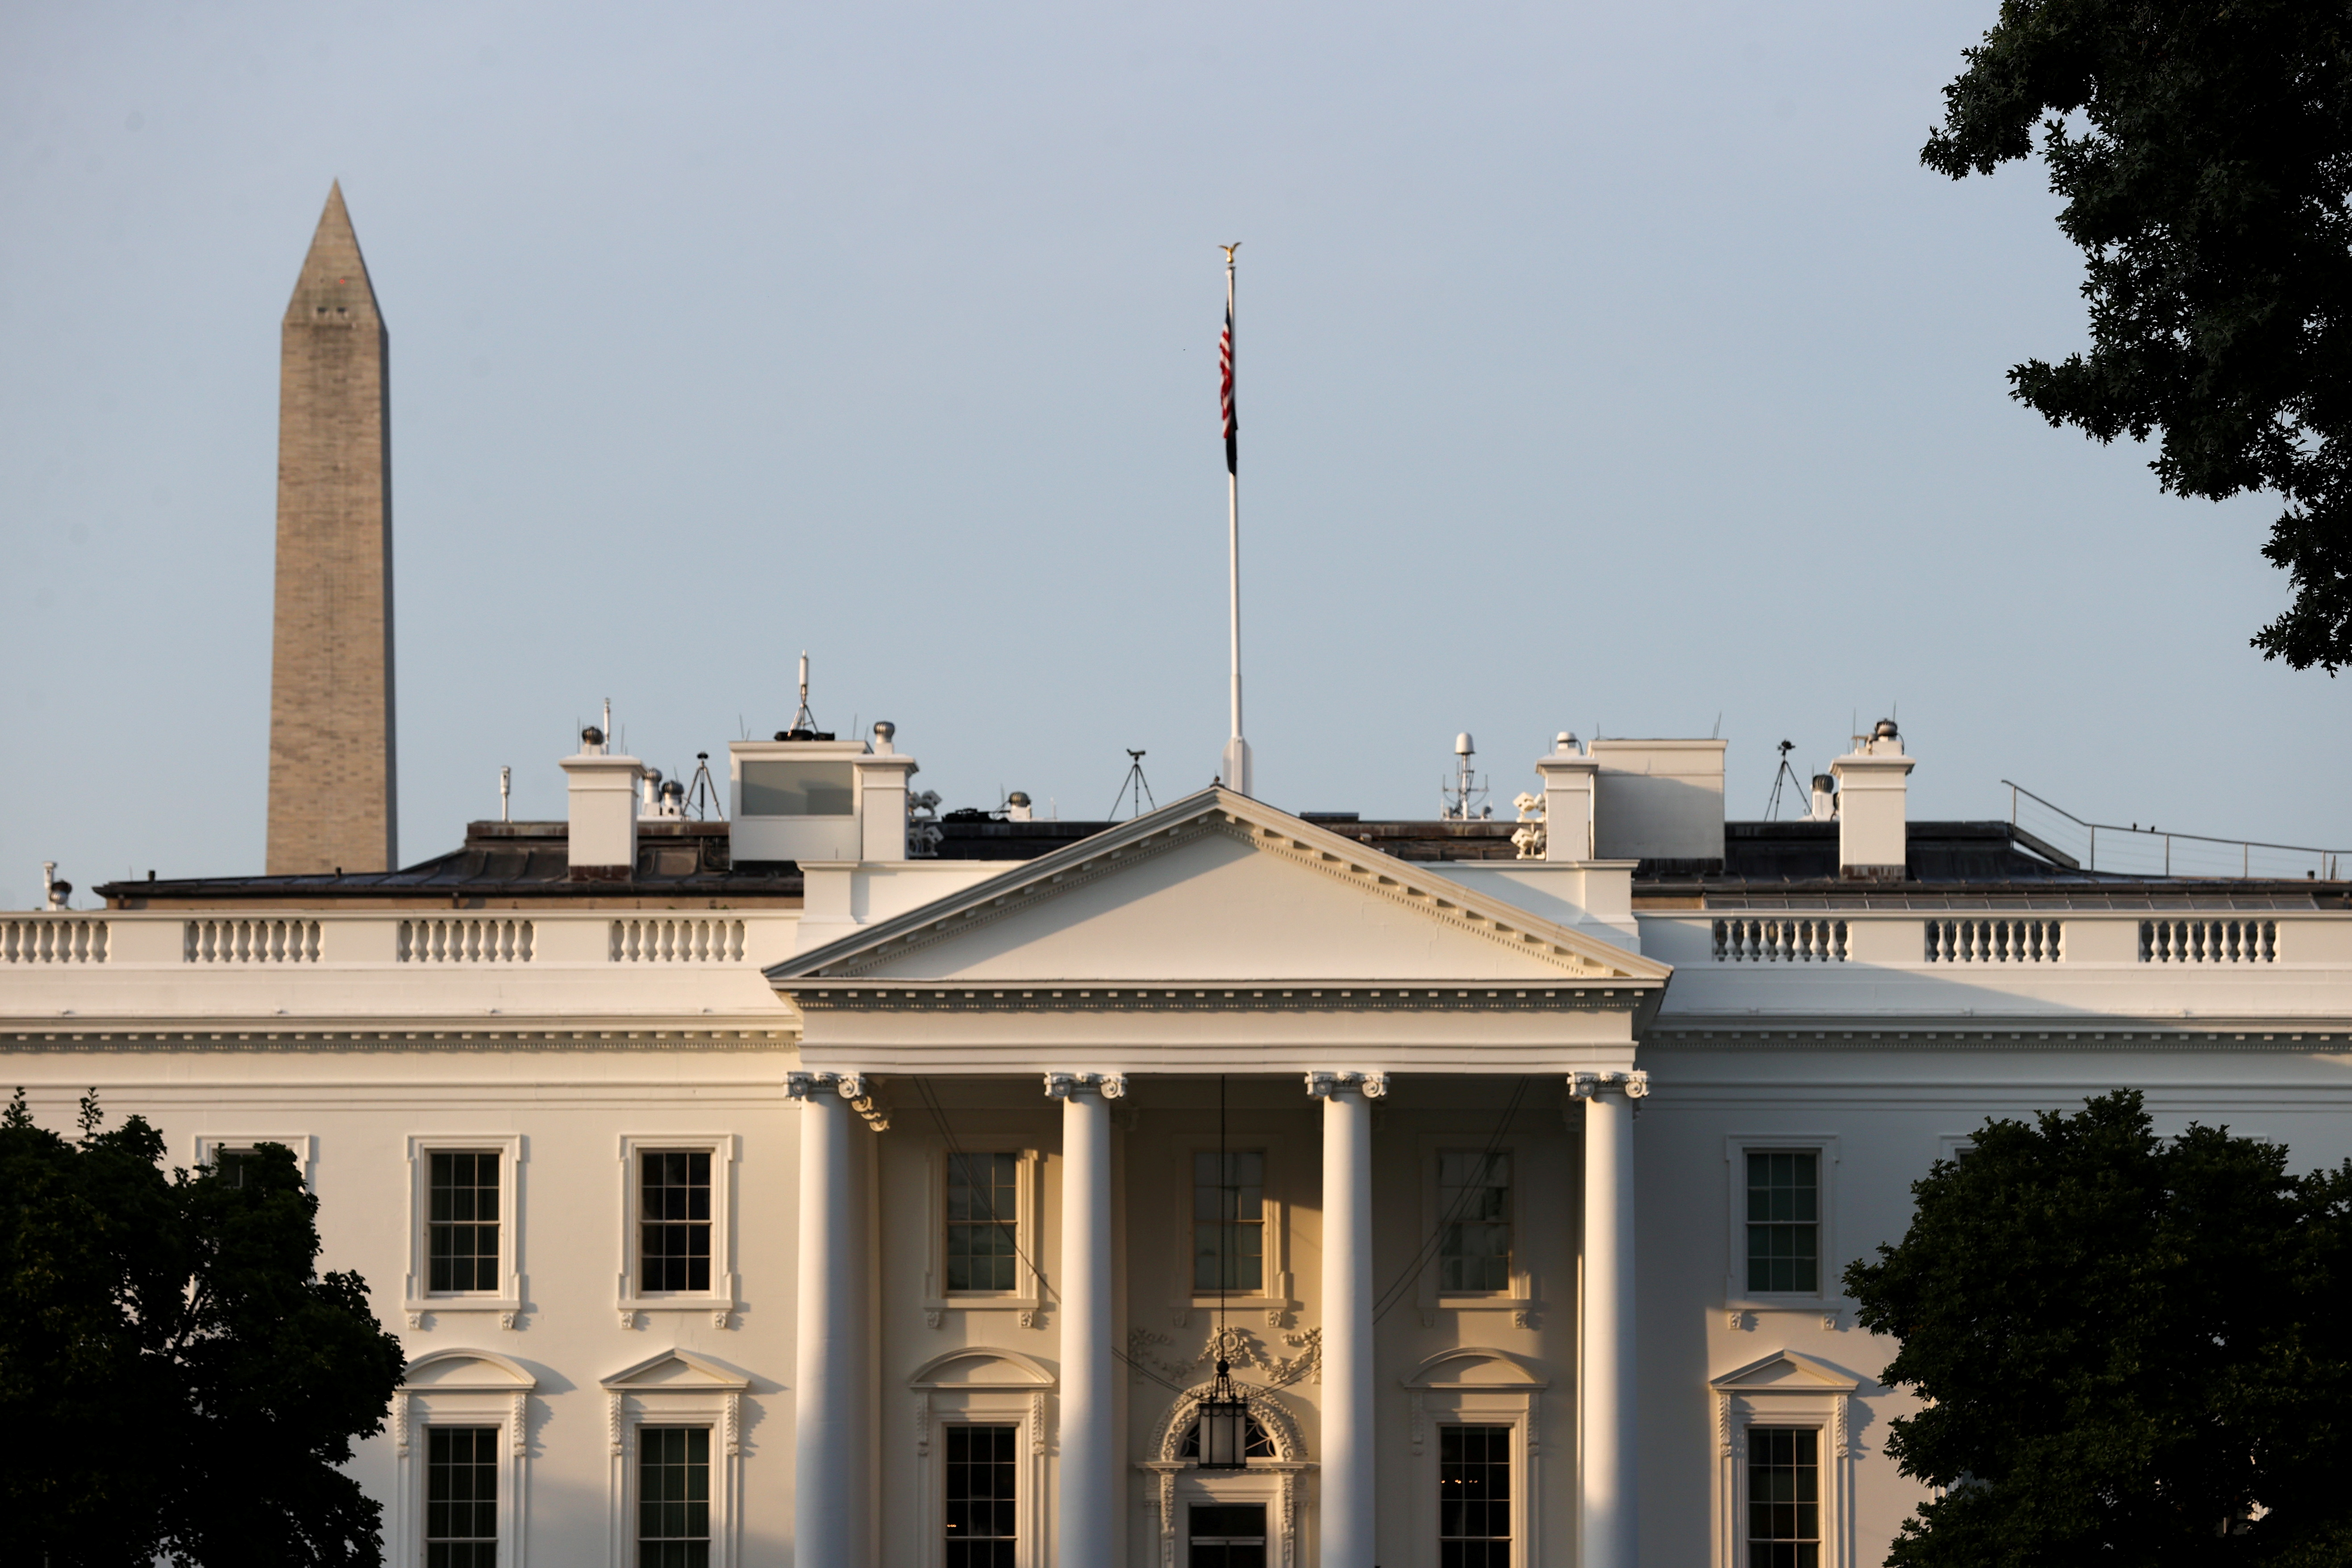 A general view of the White House in Washington, U.S. July 15, 2021. REUTERS/Jonathan Ernst/File Photo